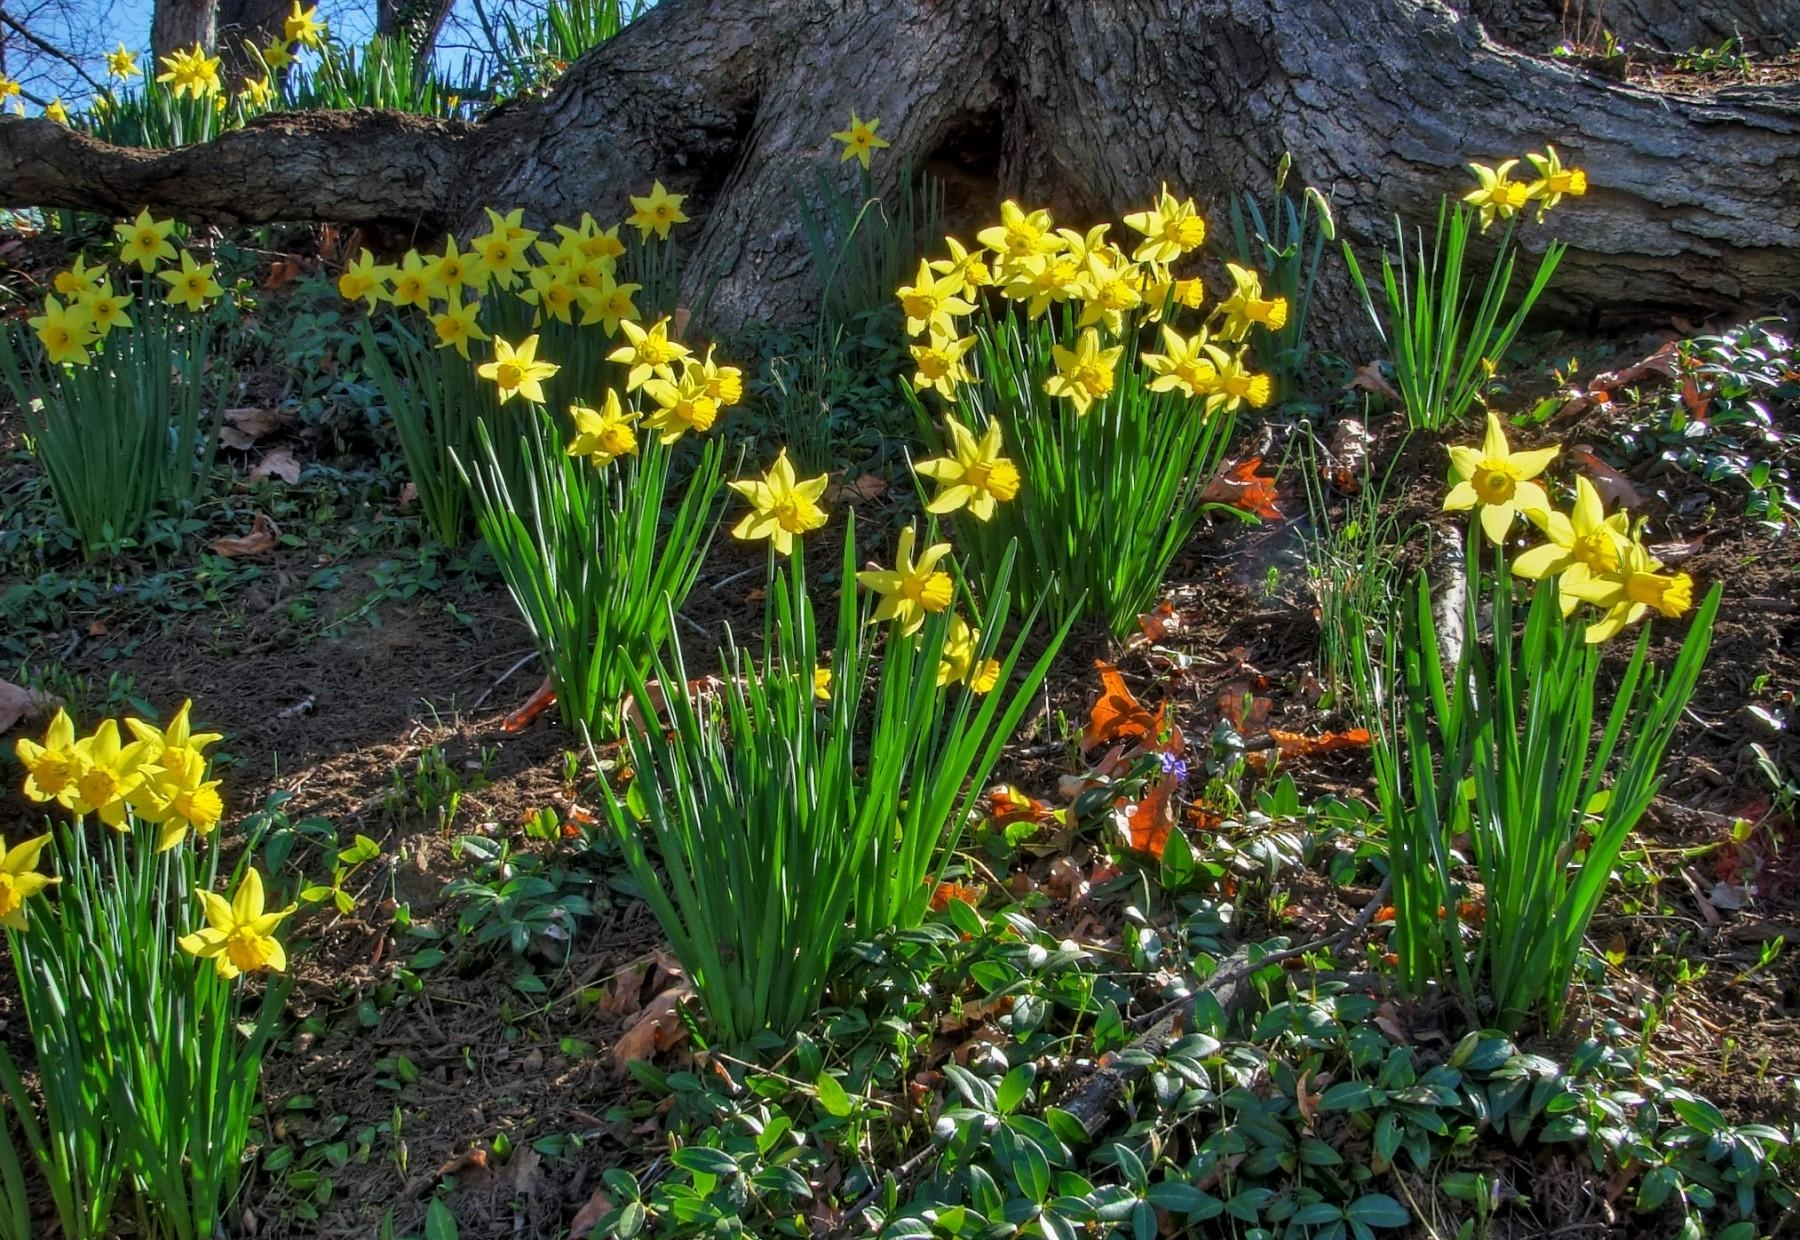 Daffodils Flowers Sunny Spring Tree Shadow HD Wallpaper 1084